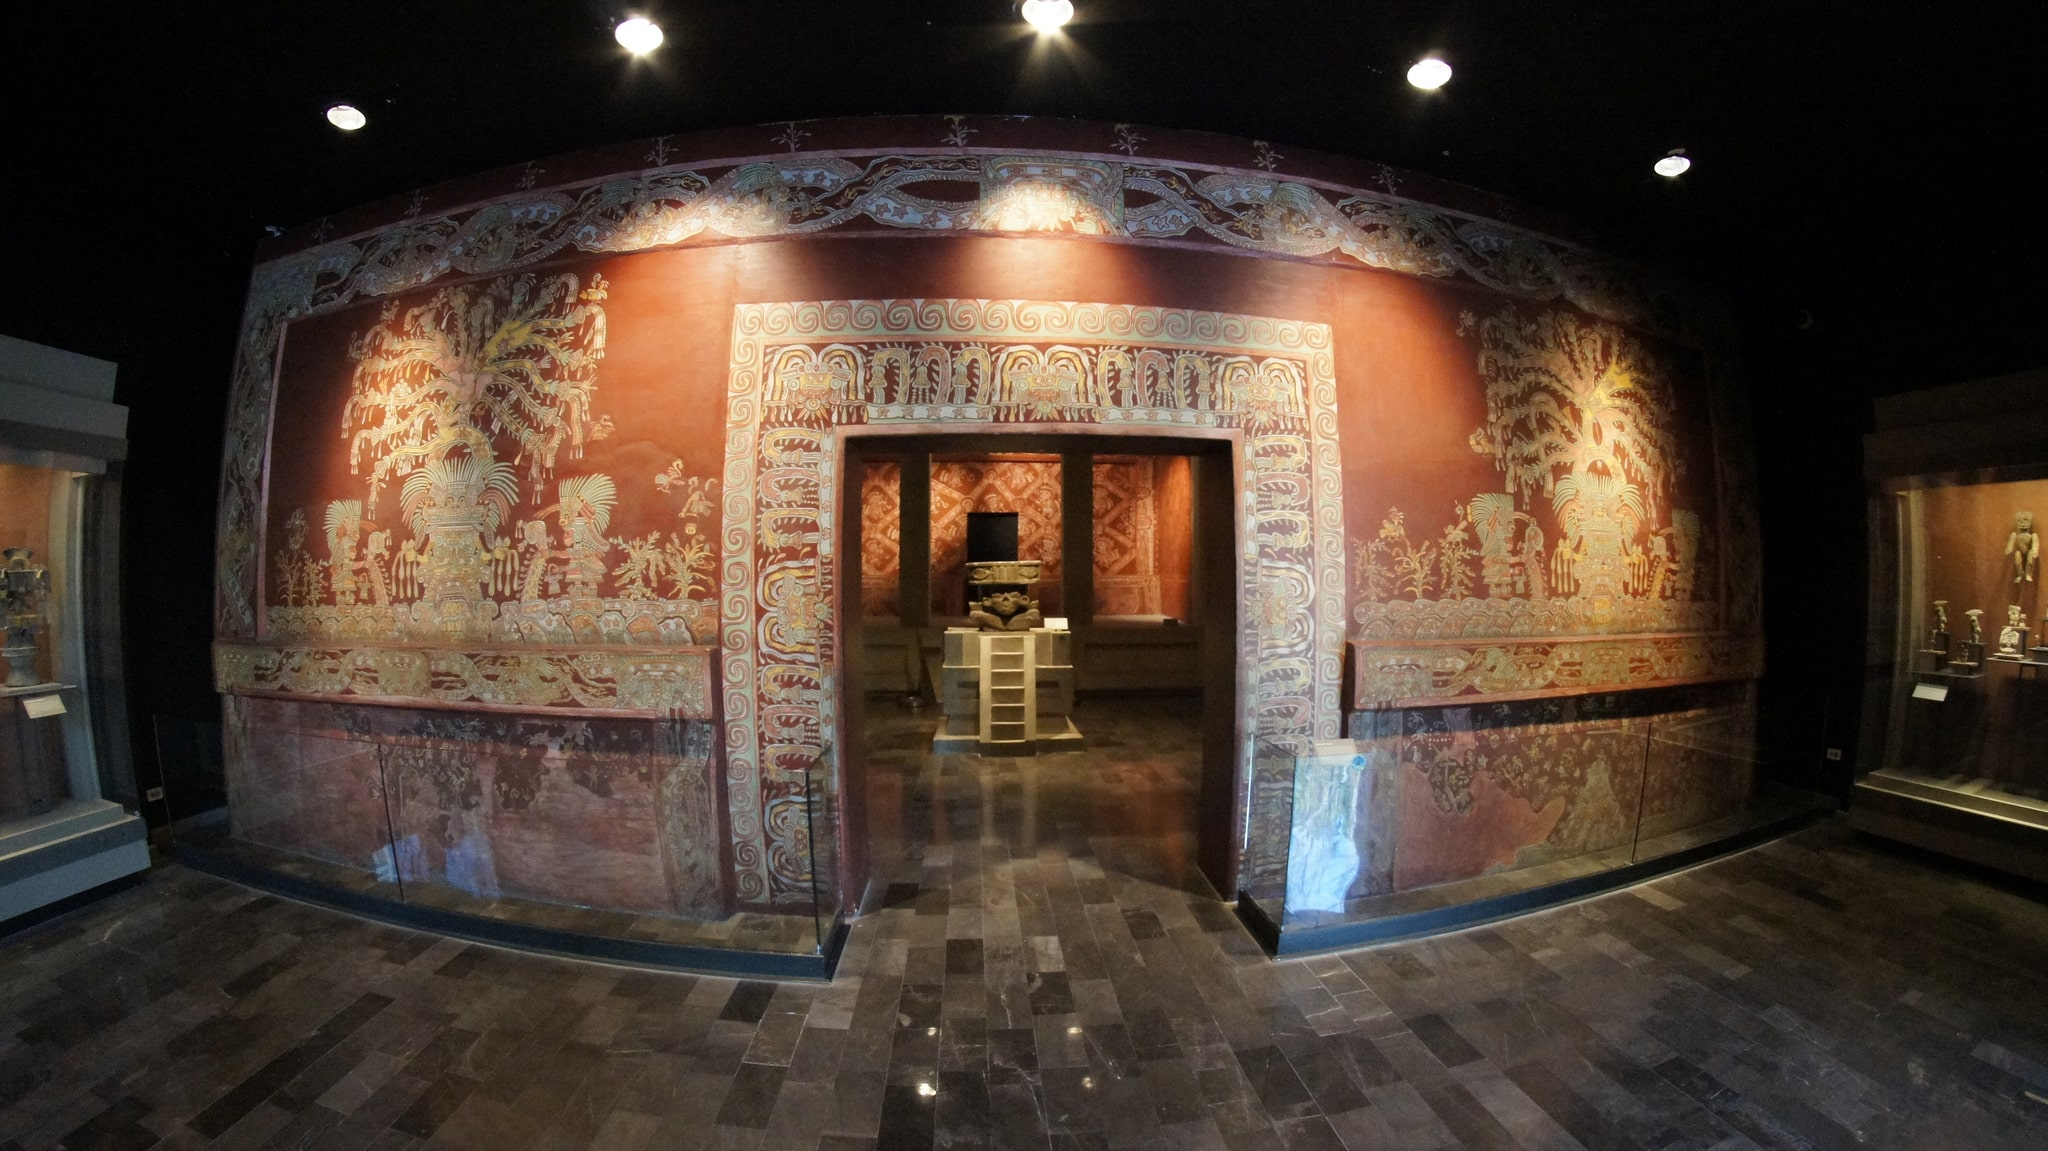 Museo Nacional de Antropologia is one of the Places to Visit in Mexico City